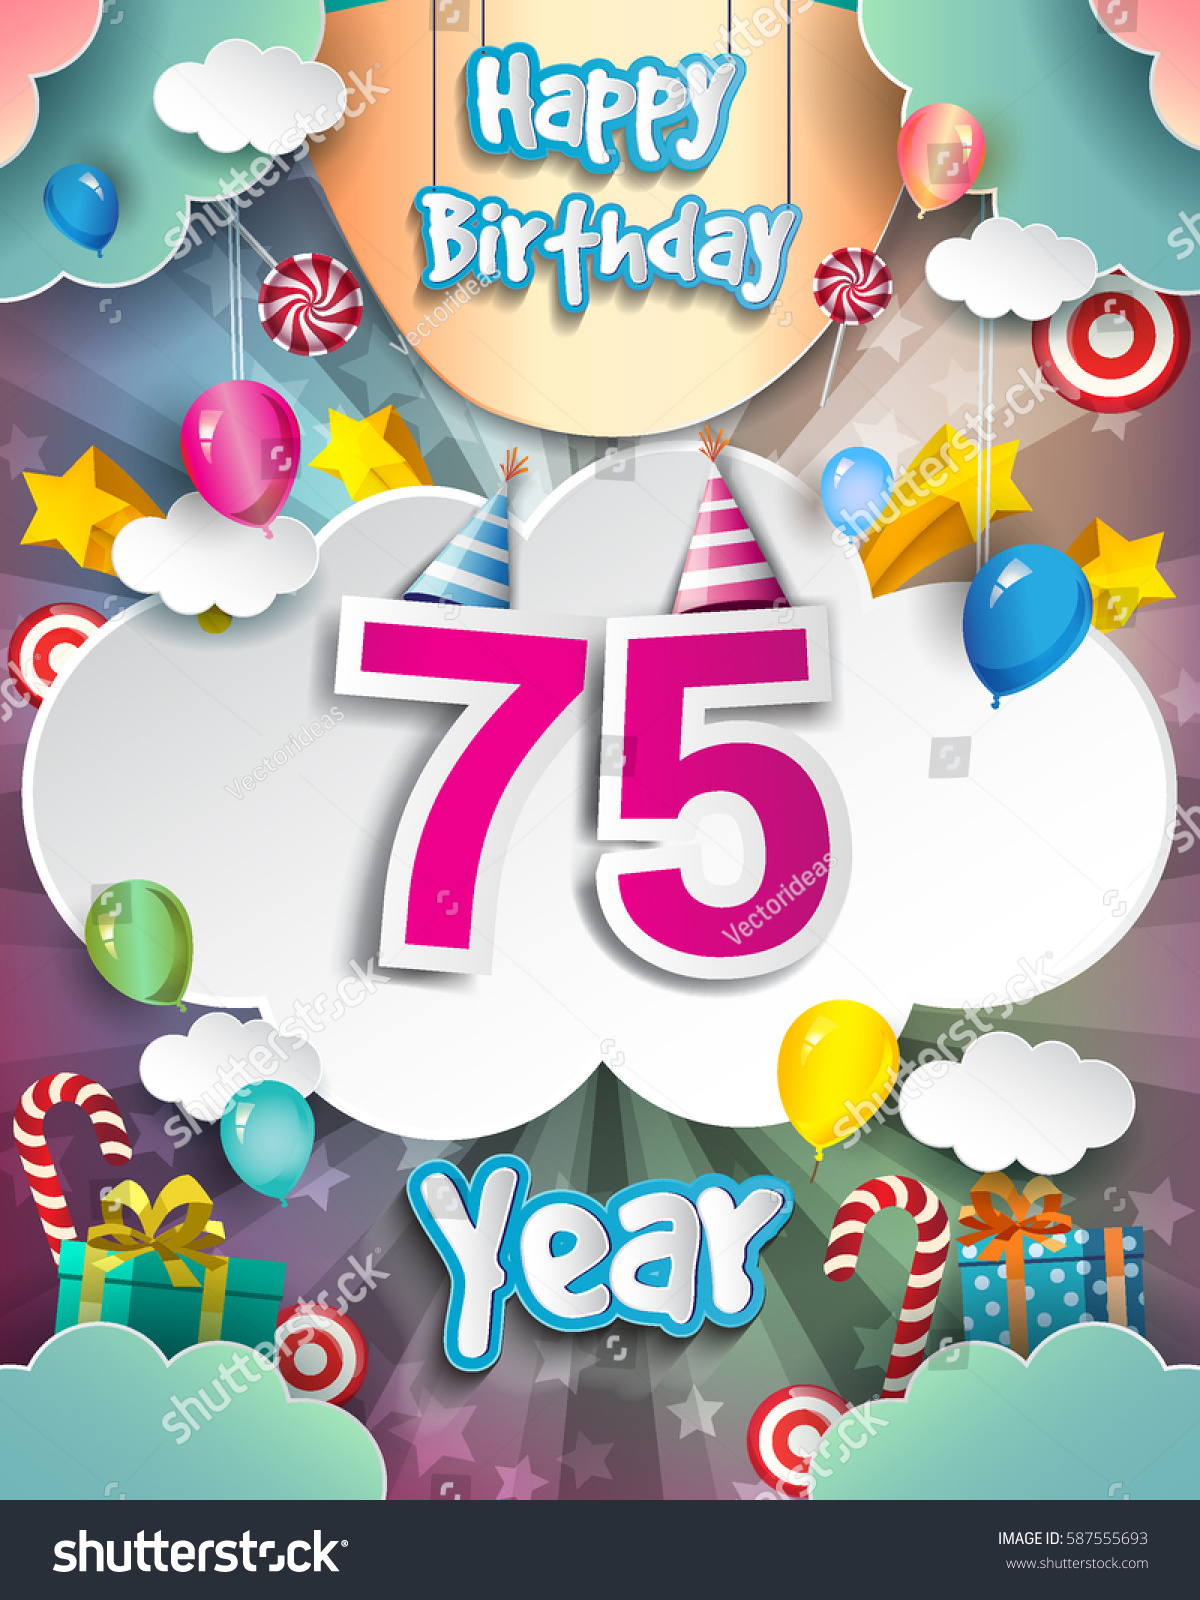 happy 75th birthday clipart ; stock-vector--th-birthday-celebration-greeting-card-design-with-clouds-and-balloons-vector-elements-for-the-587555693